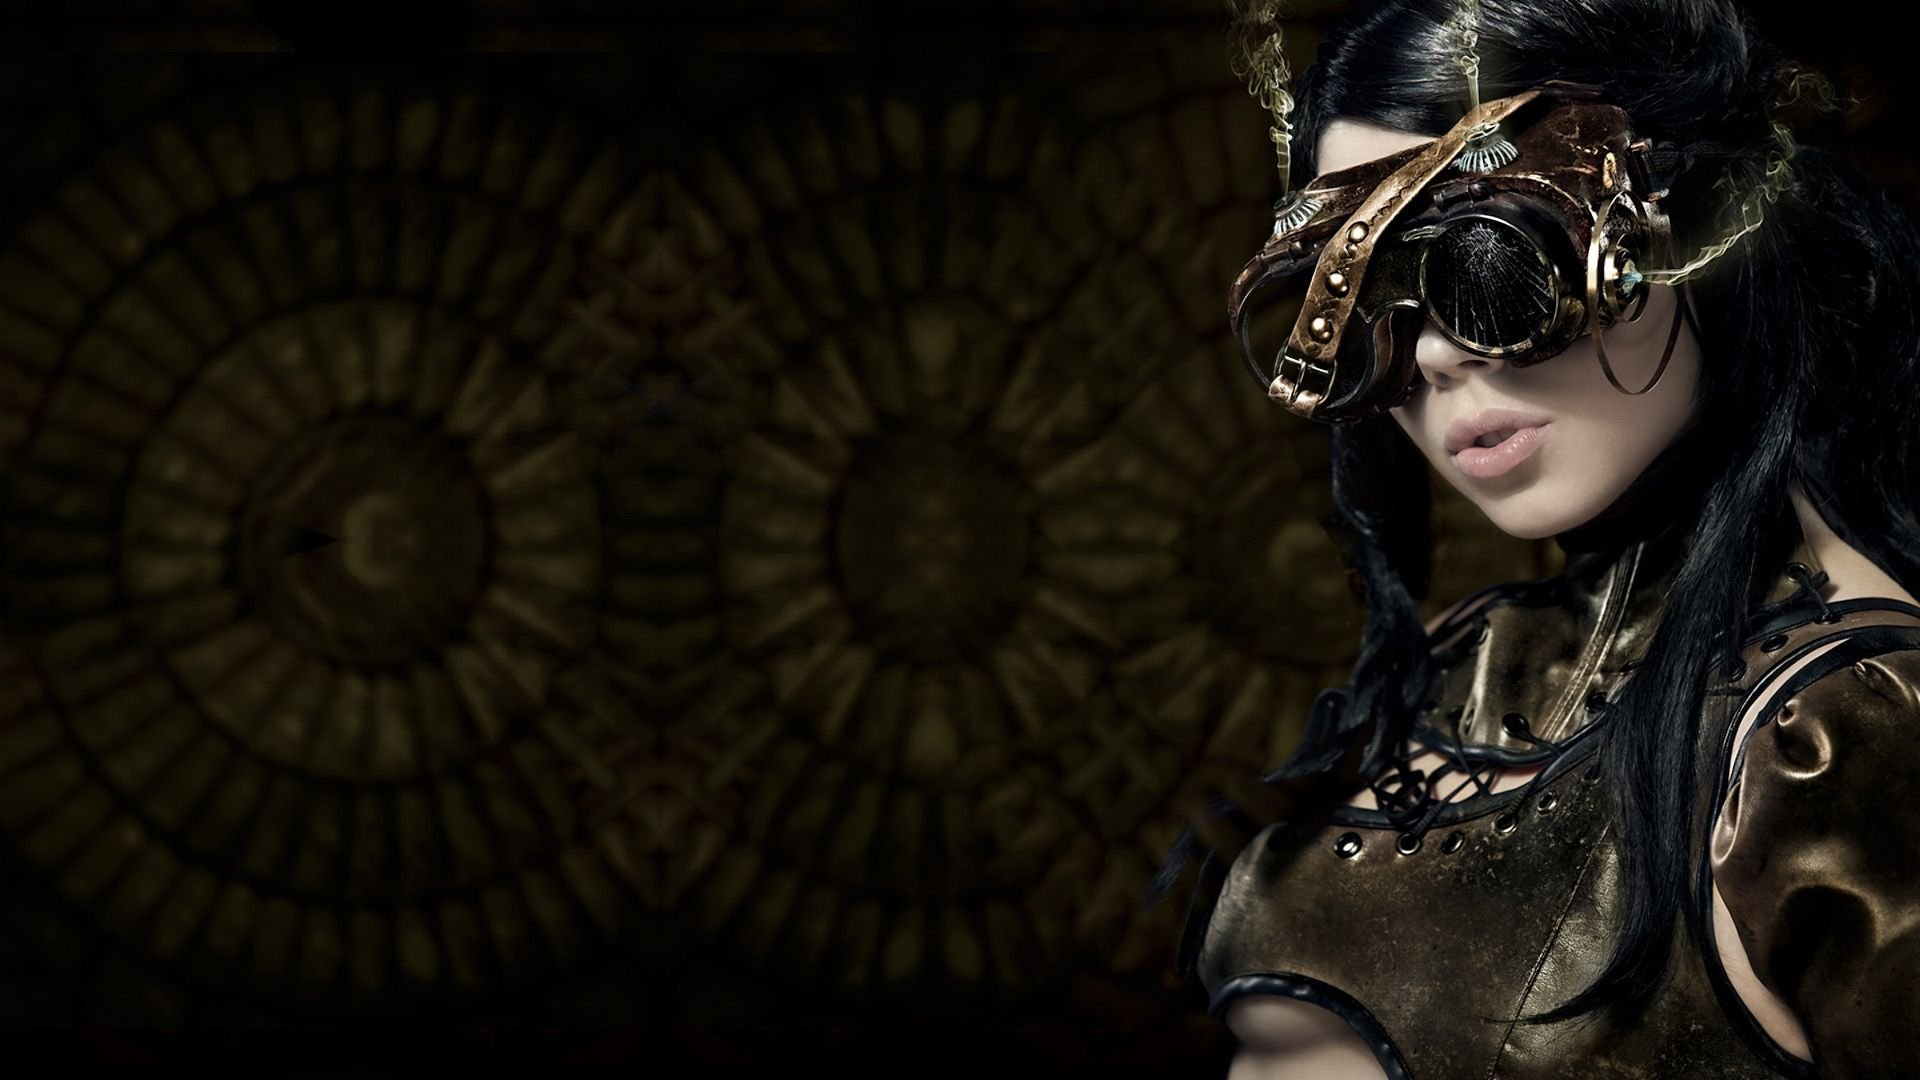 Steampunk girl Wallpaper 2875 1920x1080